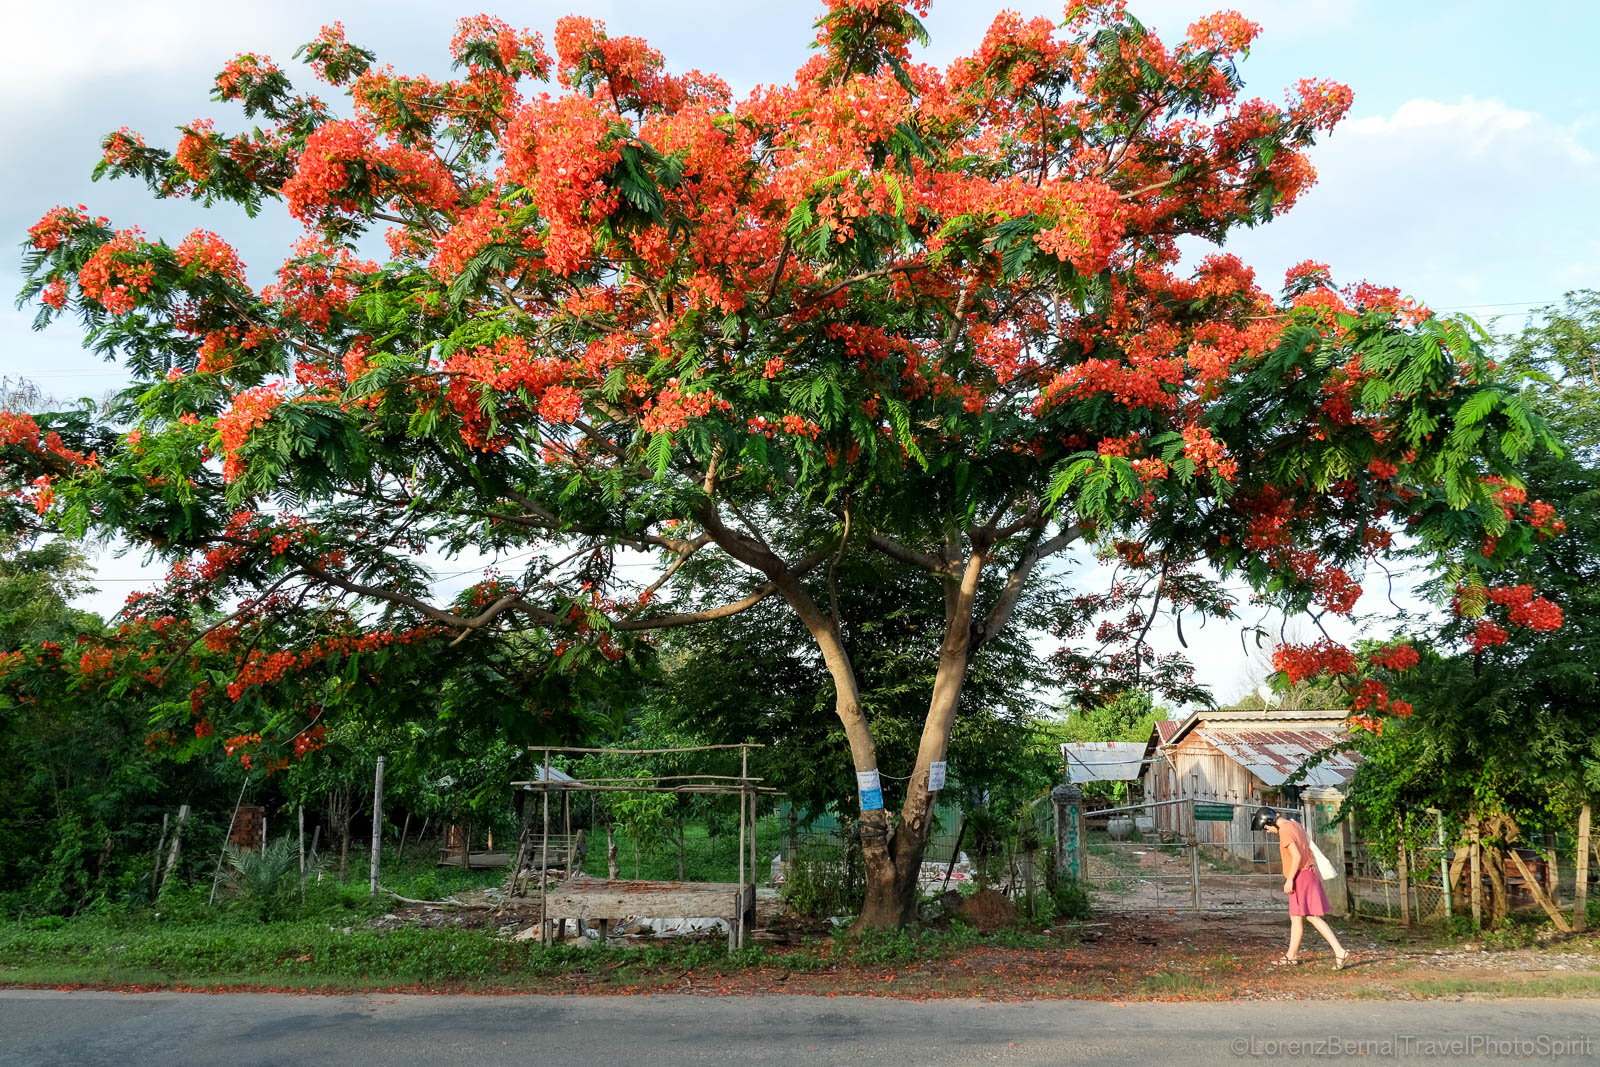 Colourful tree with turist in Kampot countryside, Cambodia